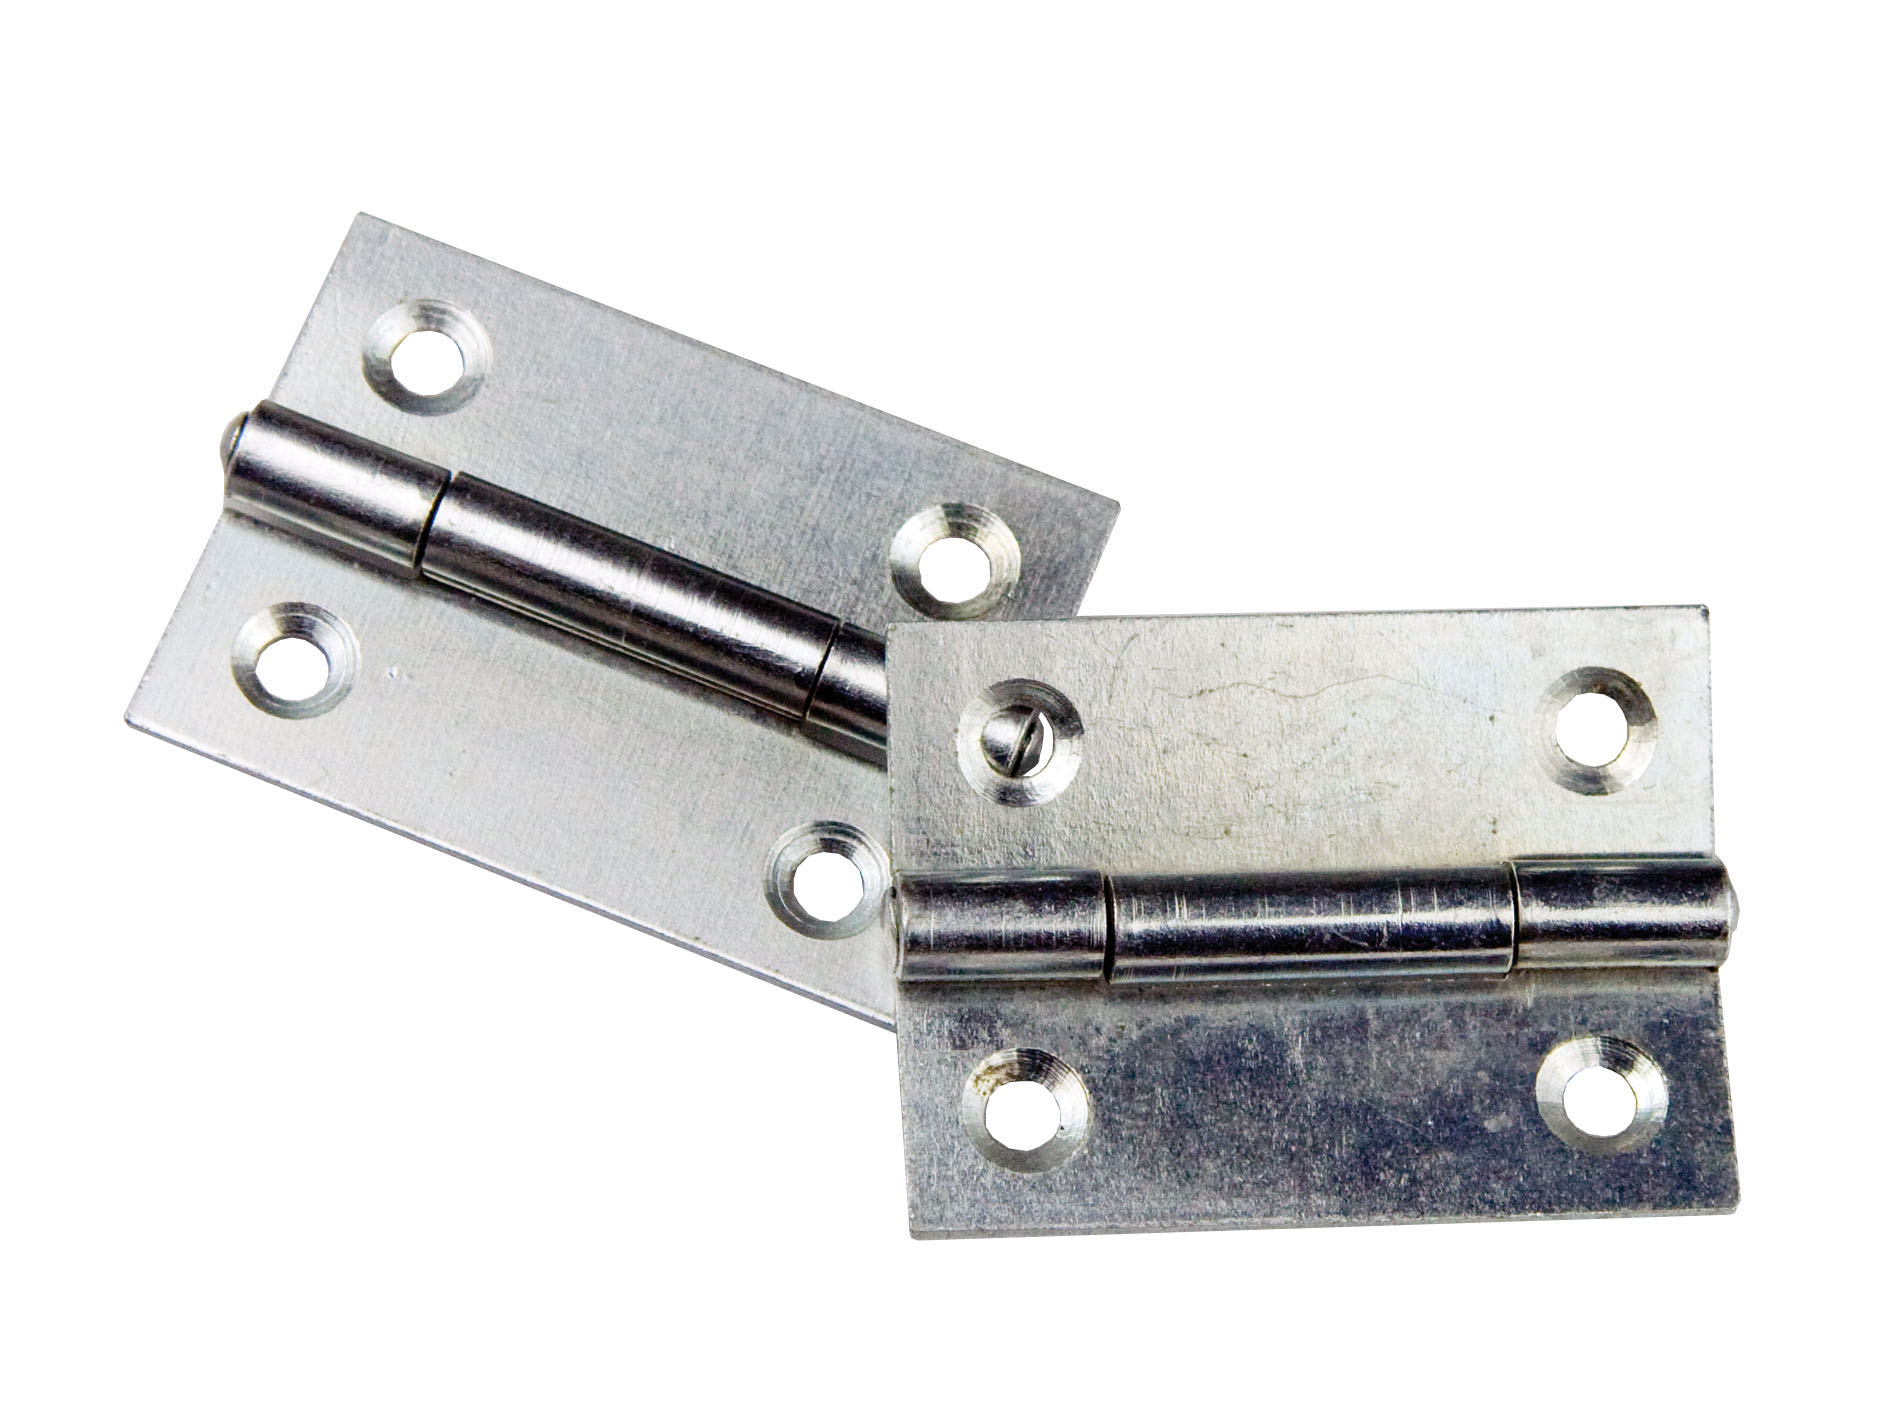 50 x 37mm Zinc Plated Butt Hinge 50 x 37mm Zinc Plated Butt Hinge Measurements Width : 50mm Height : 37mm Thickness : 1.5mm Screw Holes : 4 x 4.5mm Sold as singles Material: Steel Finish: Zinc Plated Manufactured by Siso 50 x 37mm Zinc Plated Butt Hinge Description These butt hinges are traditionally used on furniture doors or small lightweight doors. They are recessed into the frame and also the edge of the door so that when the door is closed they can butt up together ensuring the door is shut flush. The knuckle of the hinge is normally on show and is often matched with handles or knobs of a similiar finish.